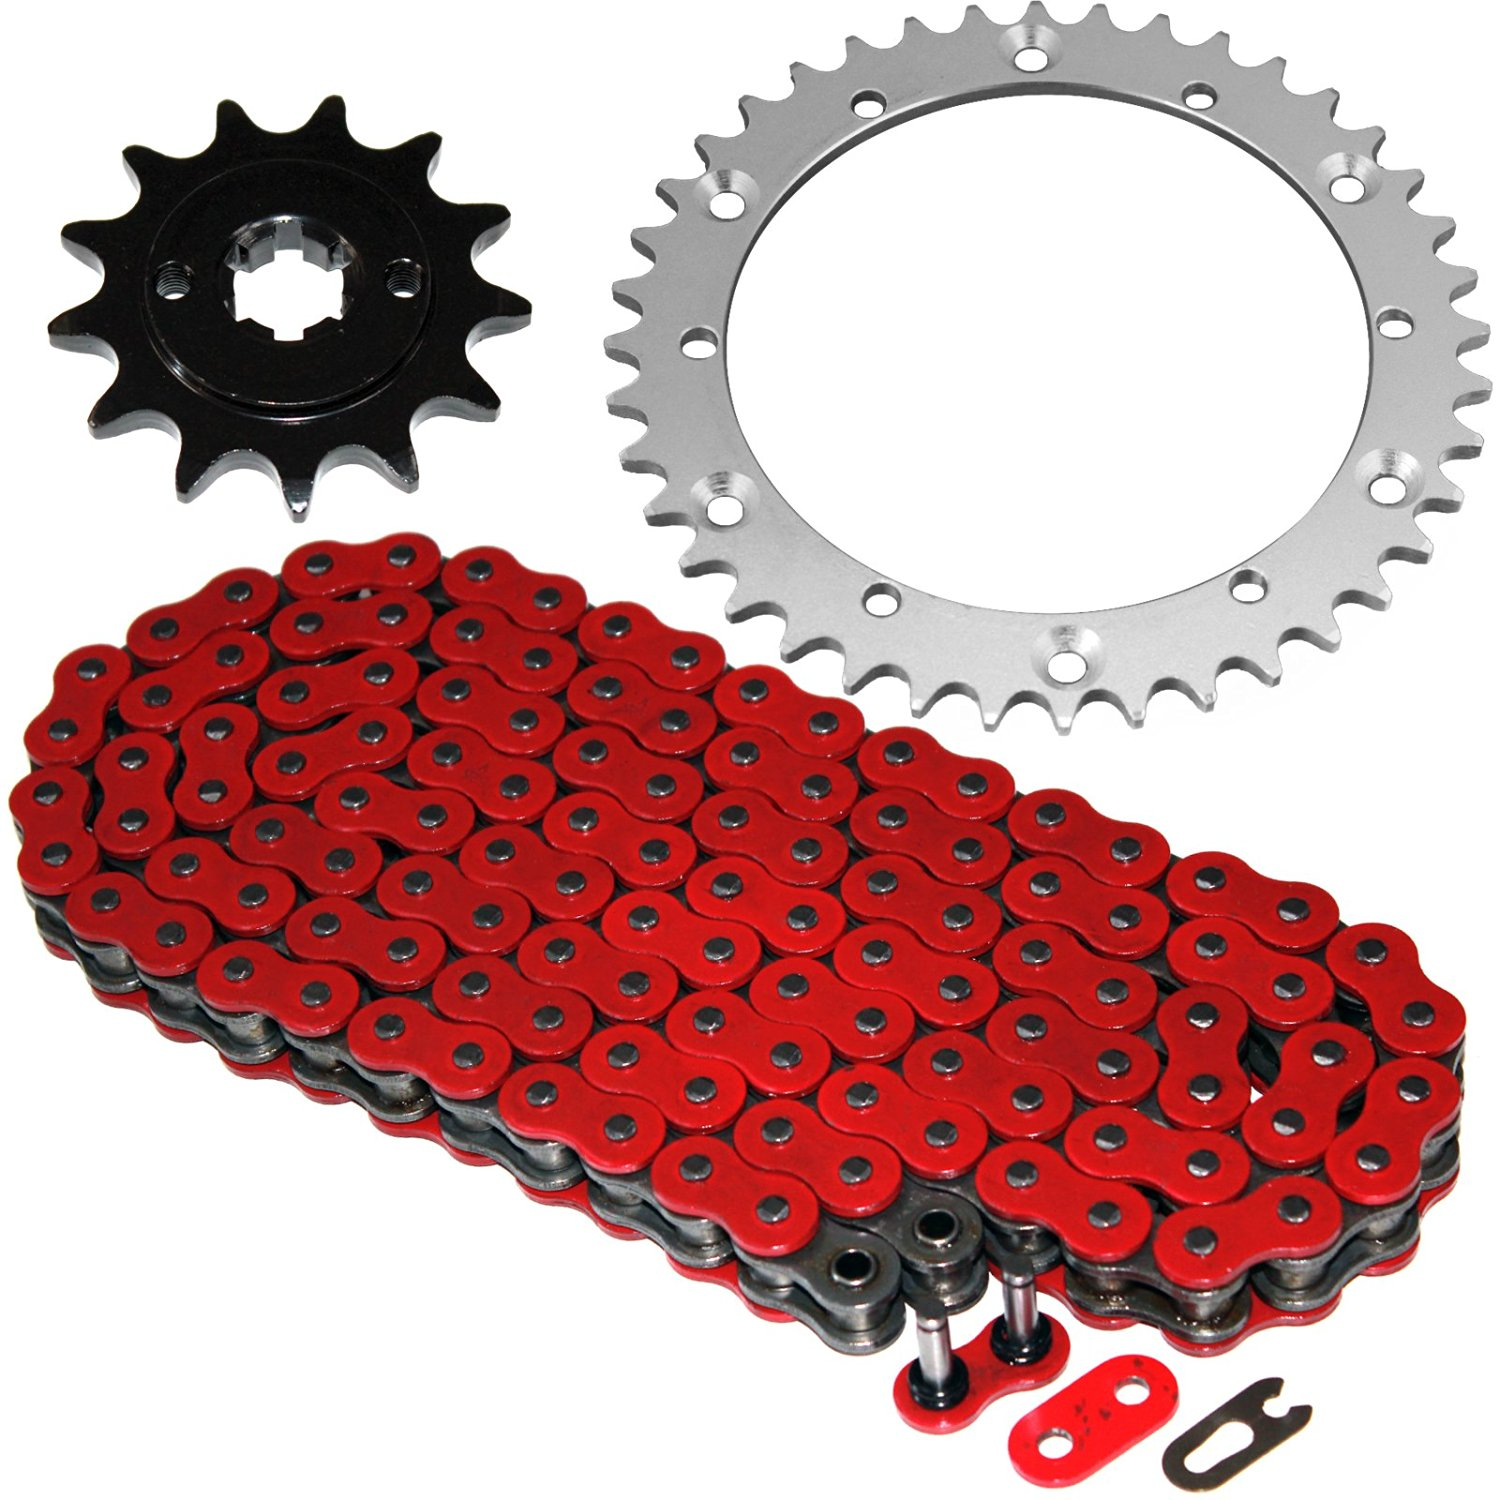 Gold Standard Chain and Sprocket Kit for Yamaha Blaster 200 YFS200 1988-2006